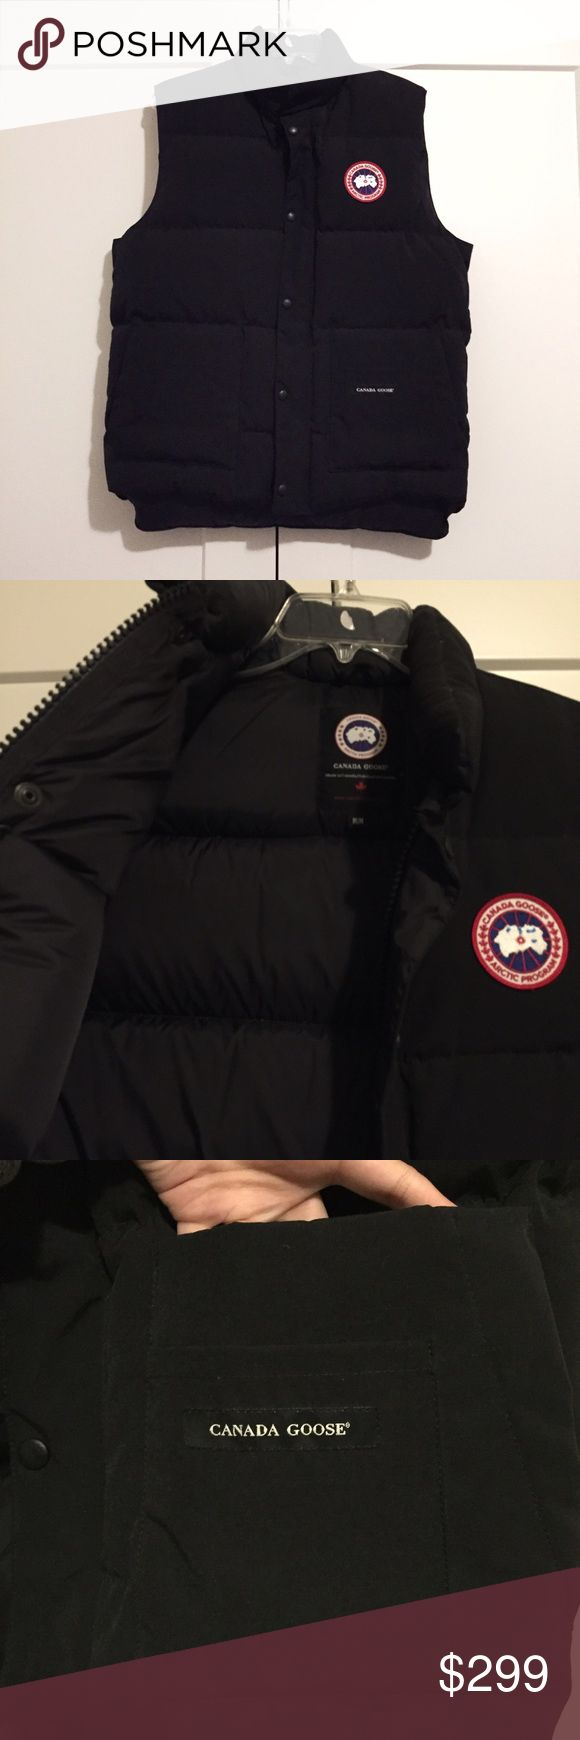 Men's Canada Goose Arctic Freestyle Down Vest Super high quality Canada Goose down vest, worn 2 times, perfect for these colder months coming up. Very warm; filled with white duck feather. Two fleece lined hand warmer pockets, two large drop in pockets and two smaller ones. I believe that Canada Goose has a lifetime warranty for repairs or replacement. Size medium. Awesome piece you'll have forever. No trades or PP/M. Canada Goose Jackets & Coats Vests